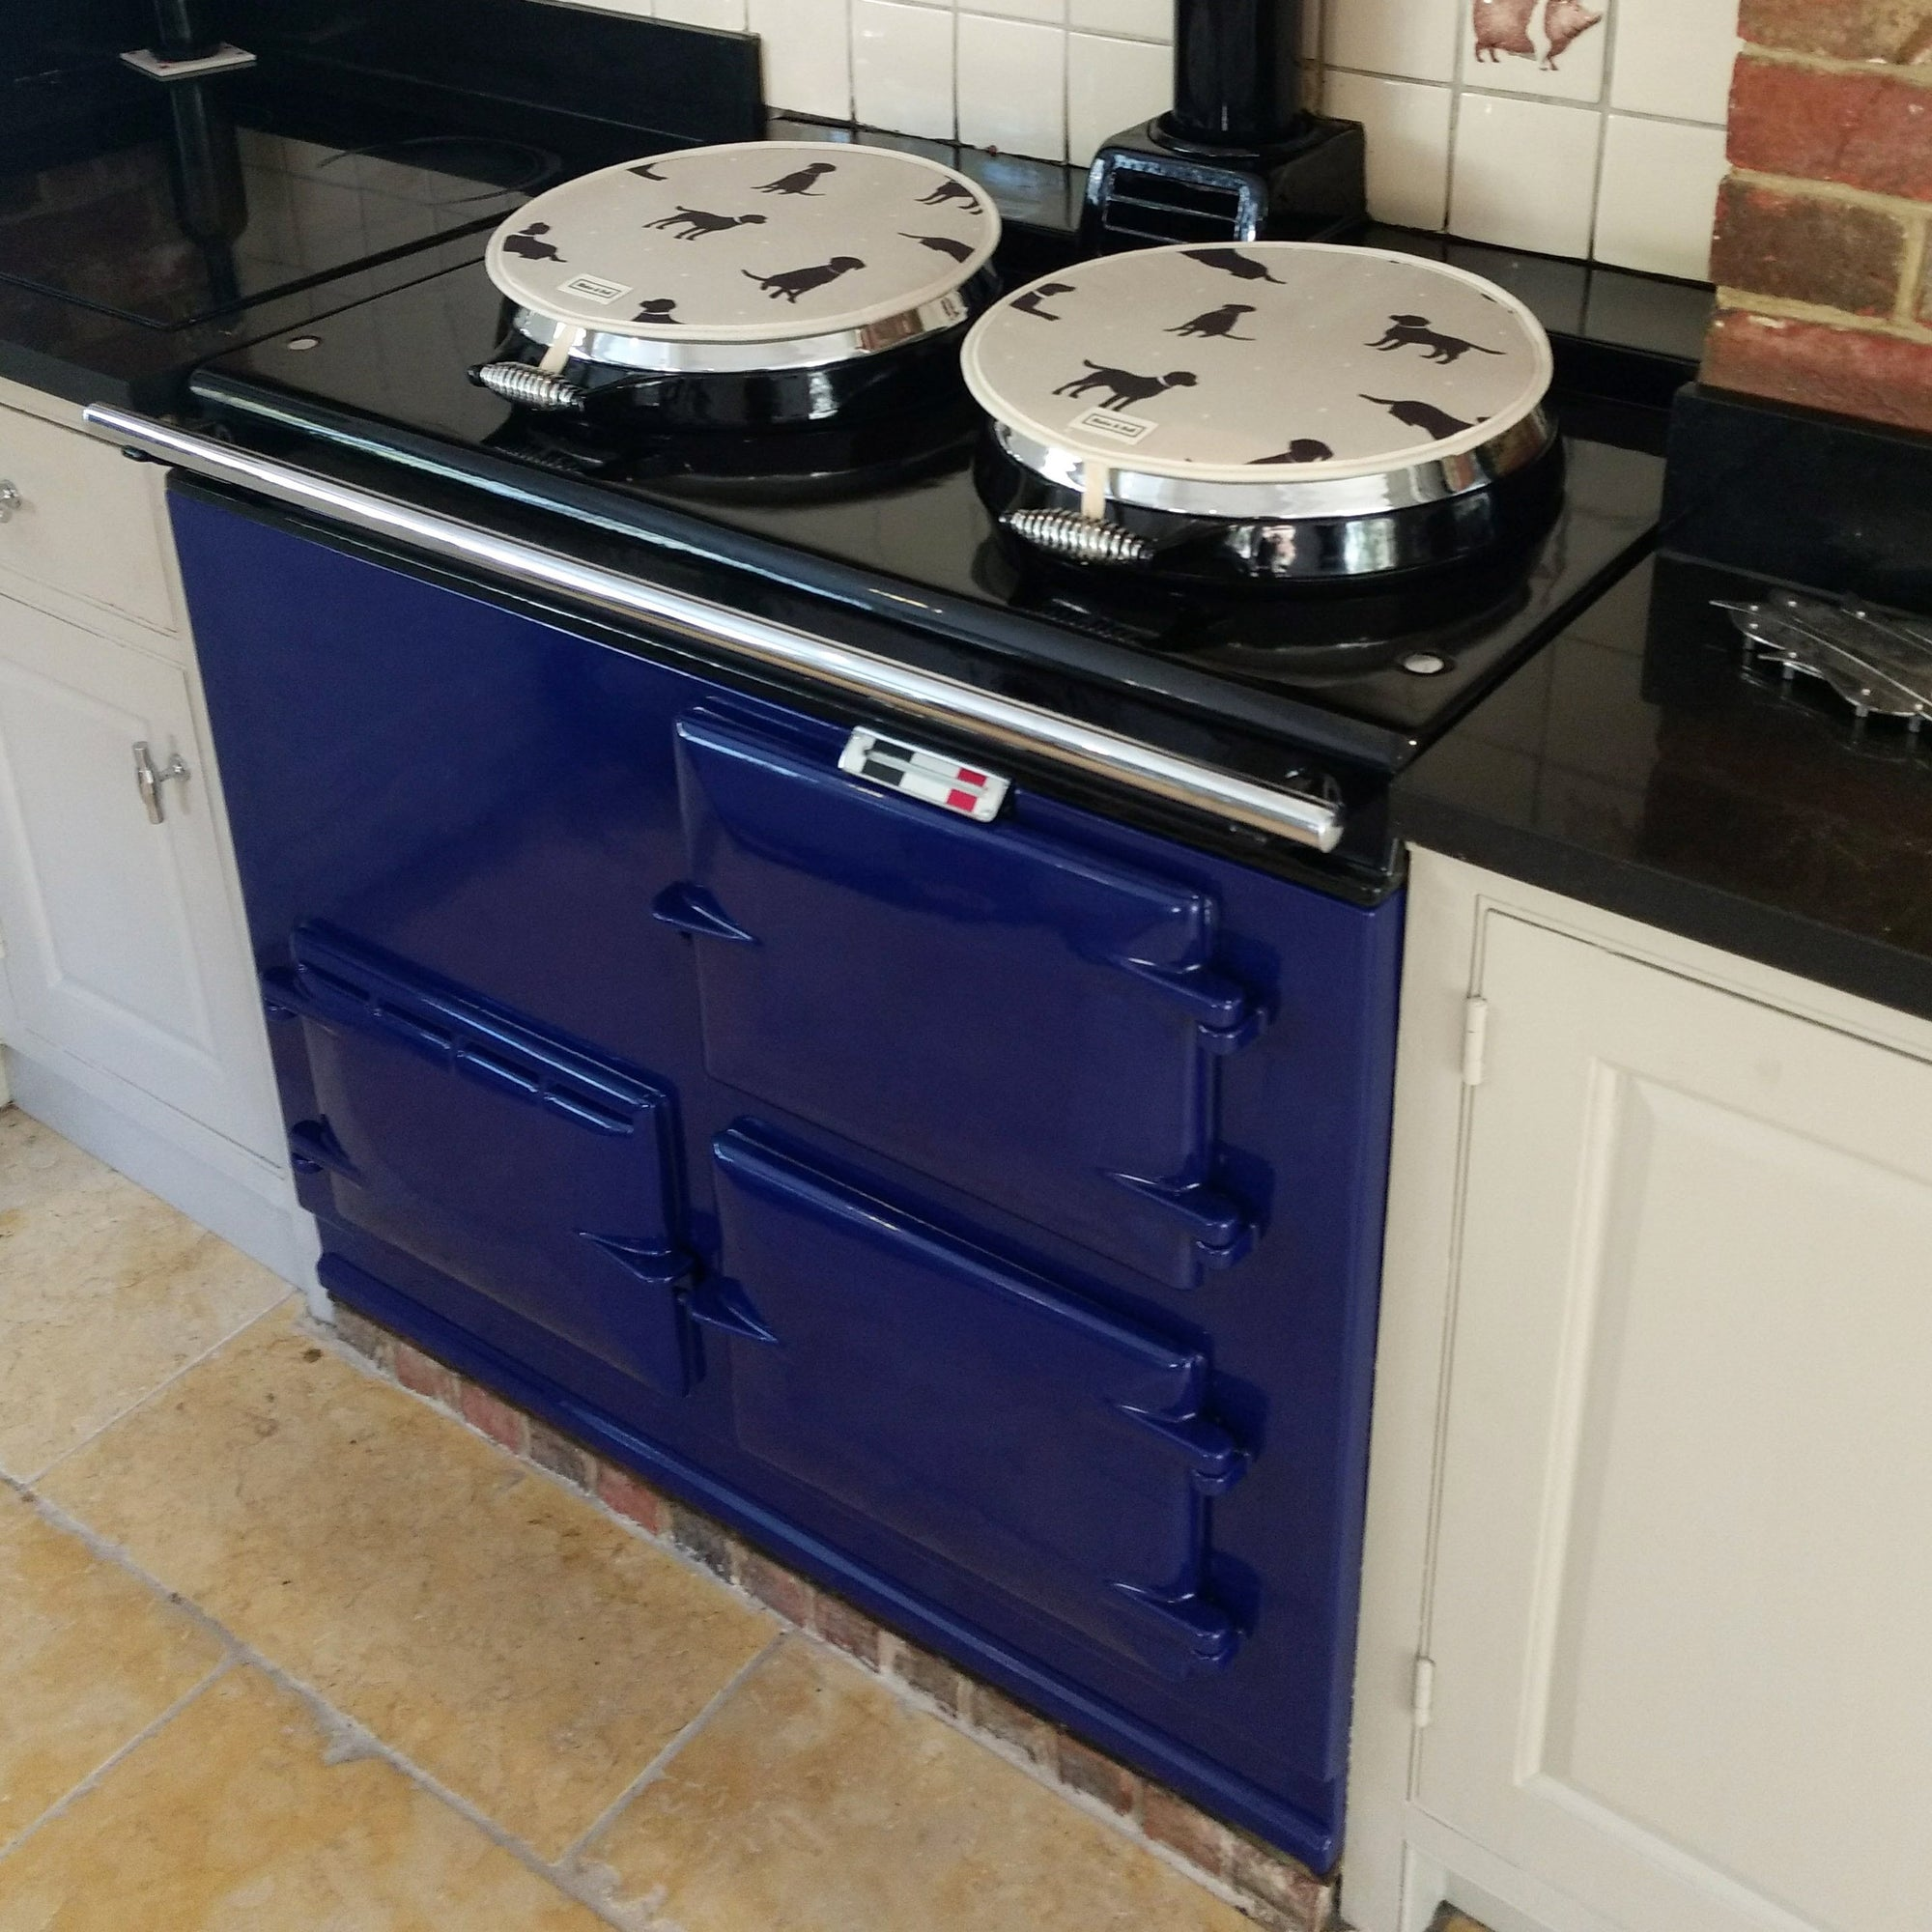 Blue Aga range cooker re-enamelled in... blue!